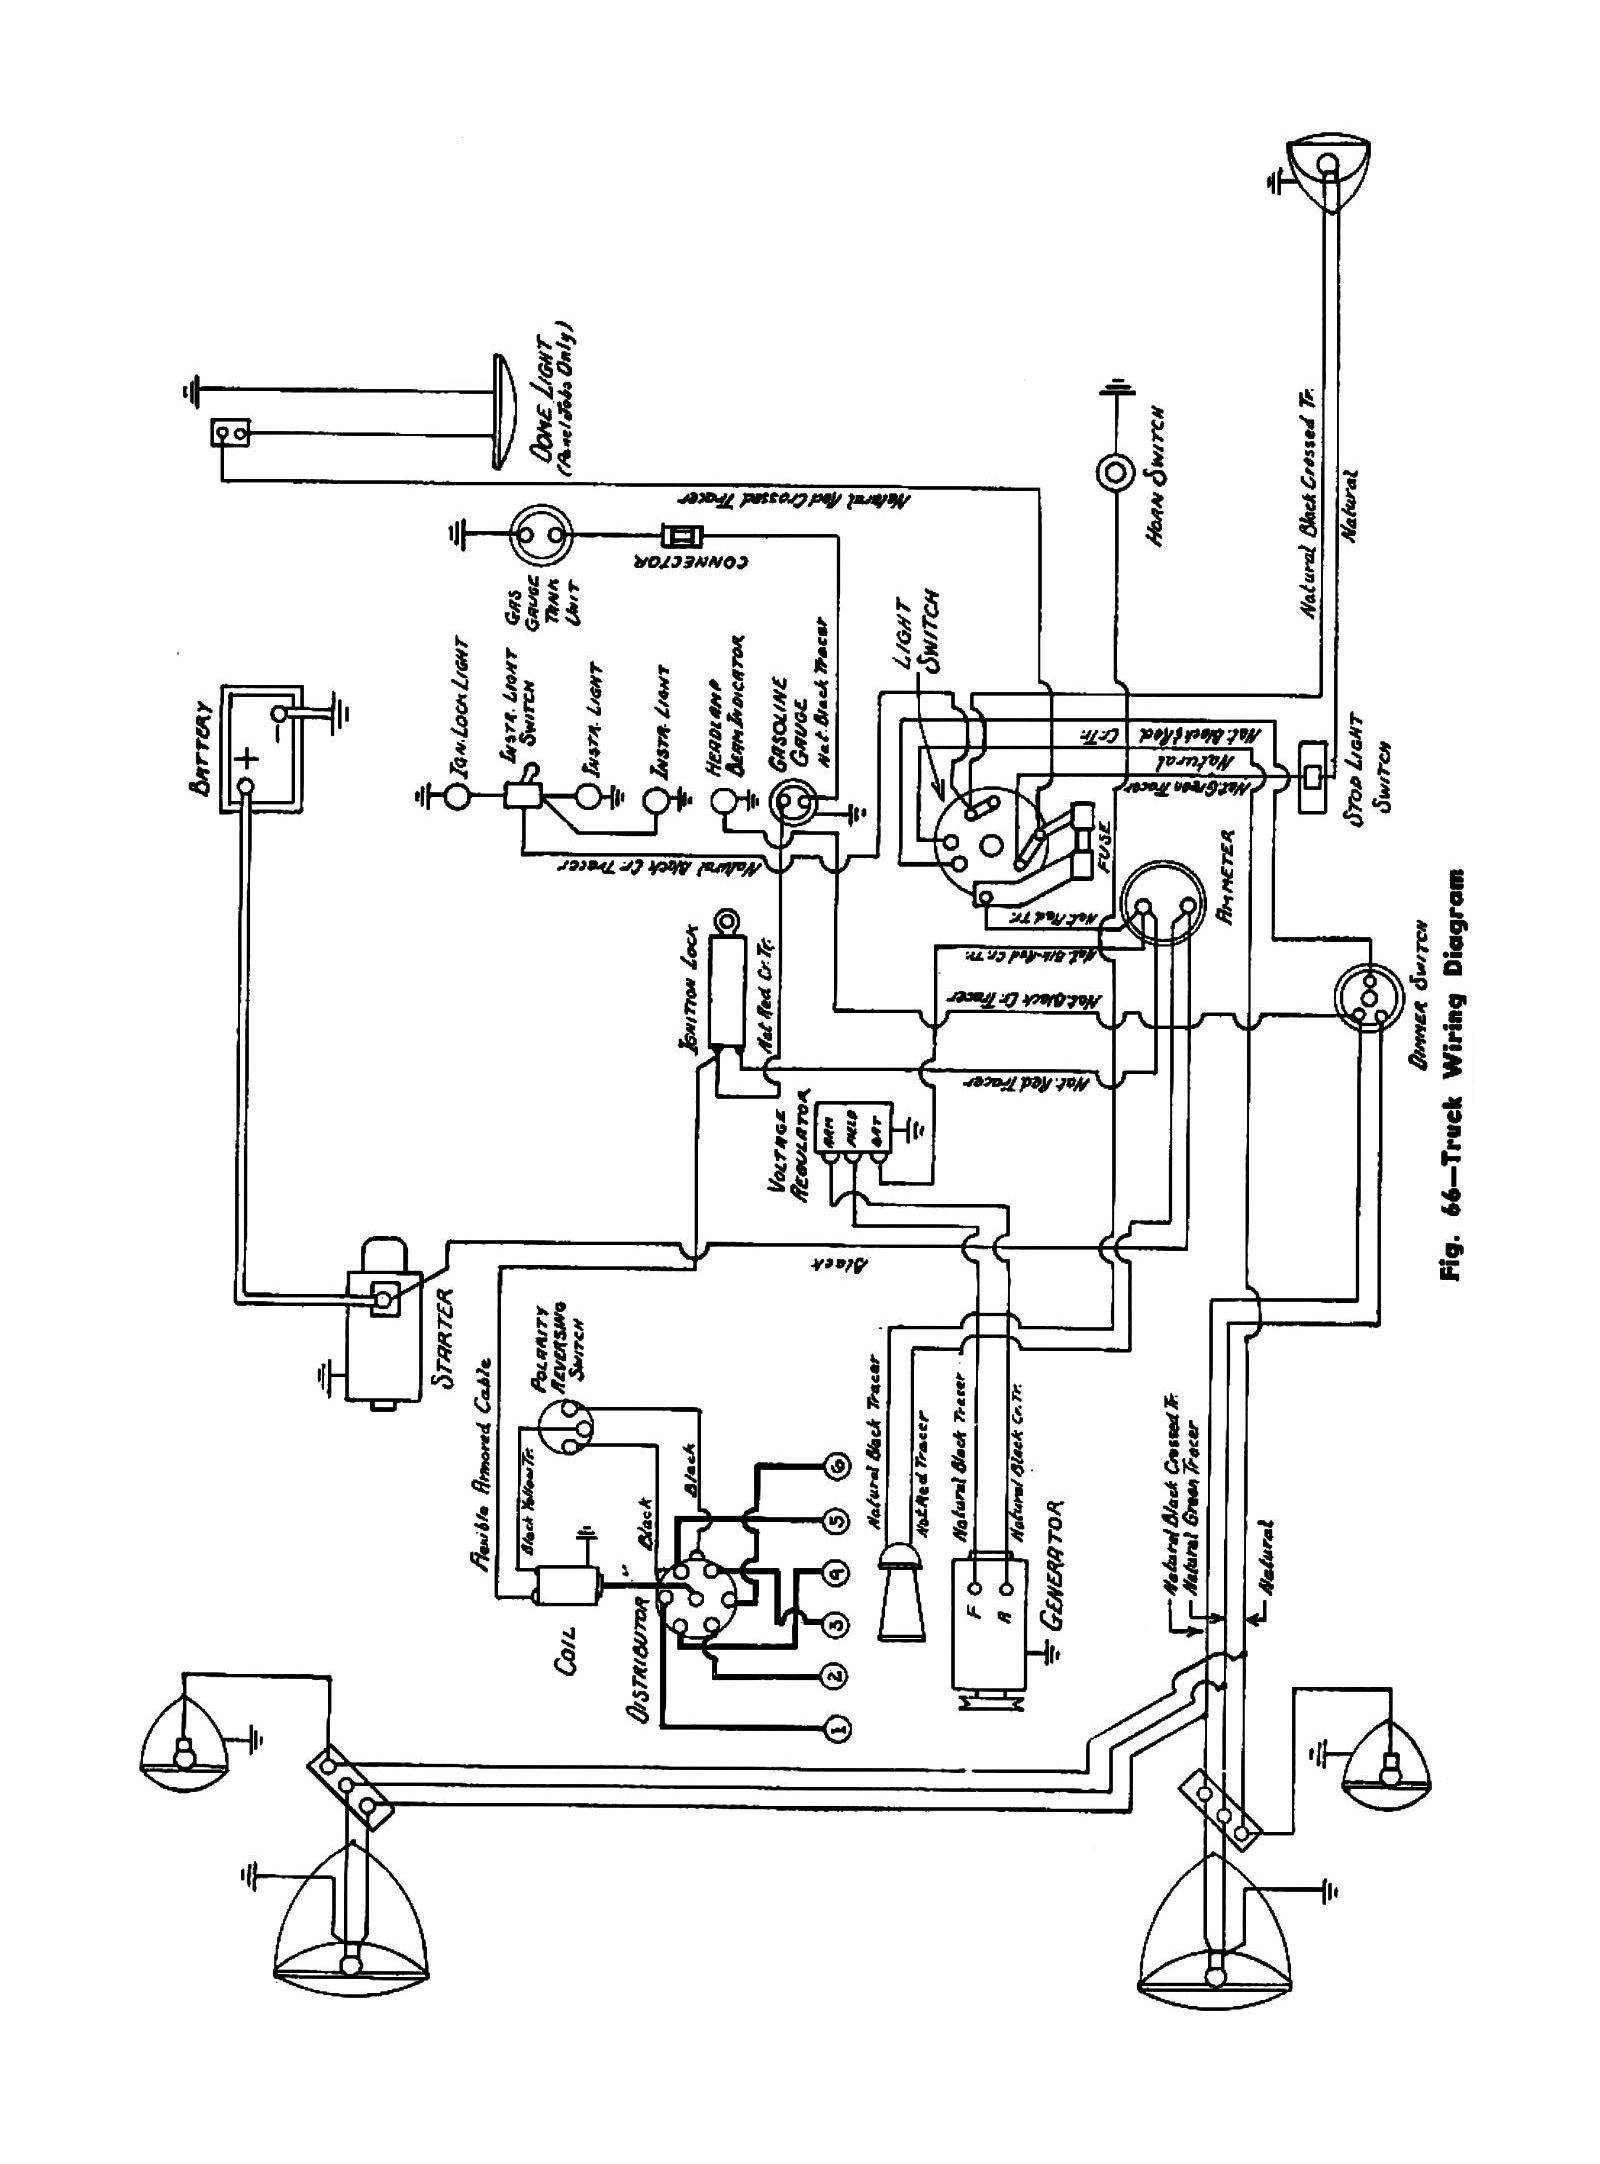 full wiring diagram 1949 wiring diagram data rh 3 17 16 reisen fuer meister de